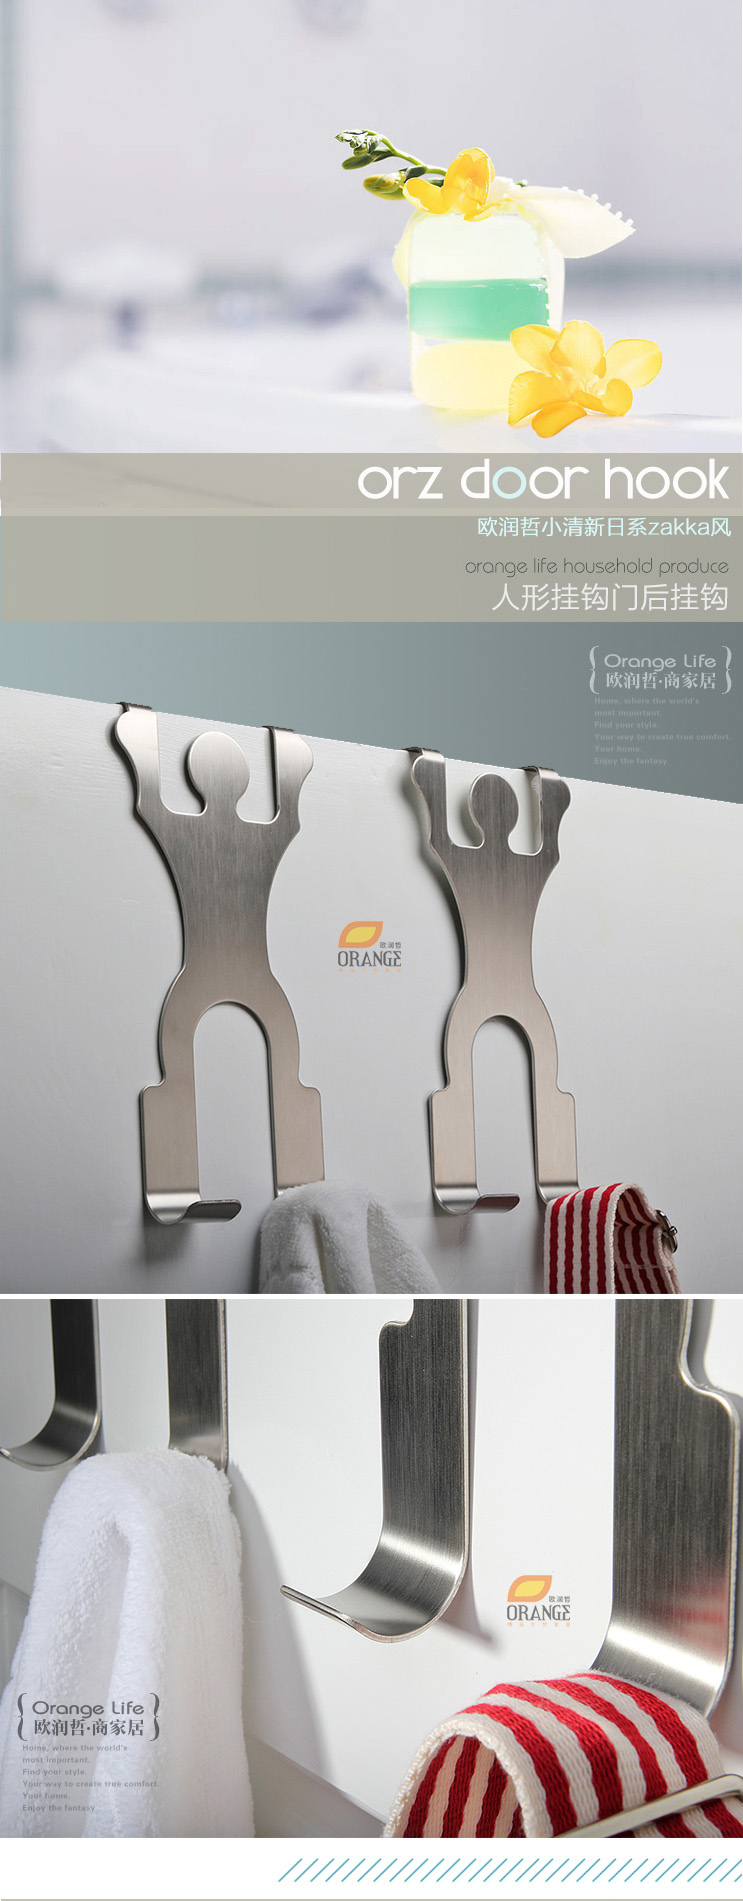 OuRunzhe Run Europe philosopher-type door hook free nail hook up creative door hanger pastoral style coat hooks